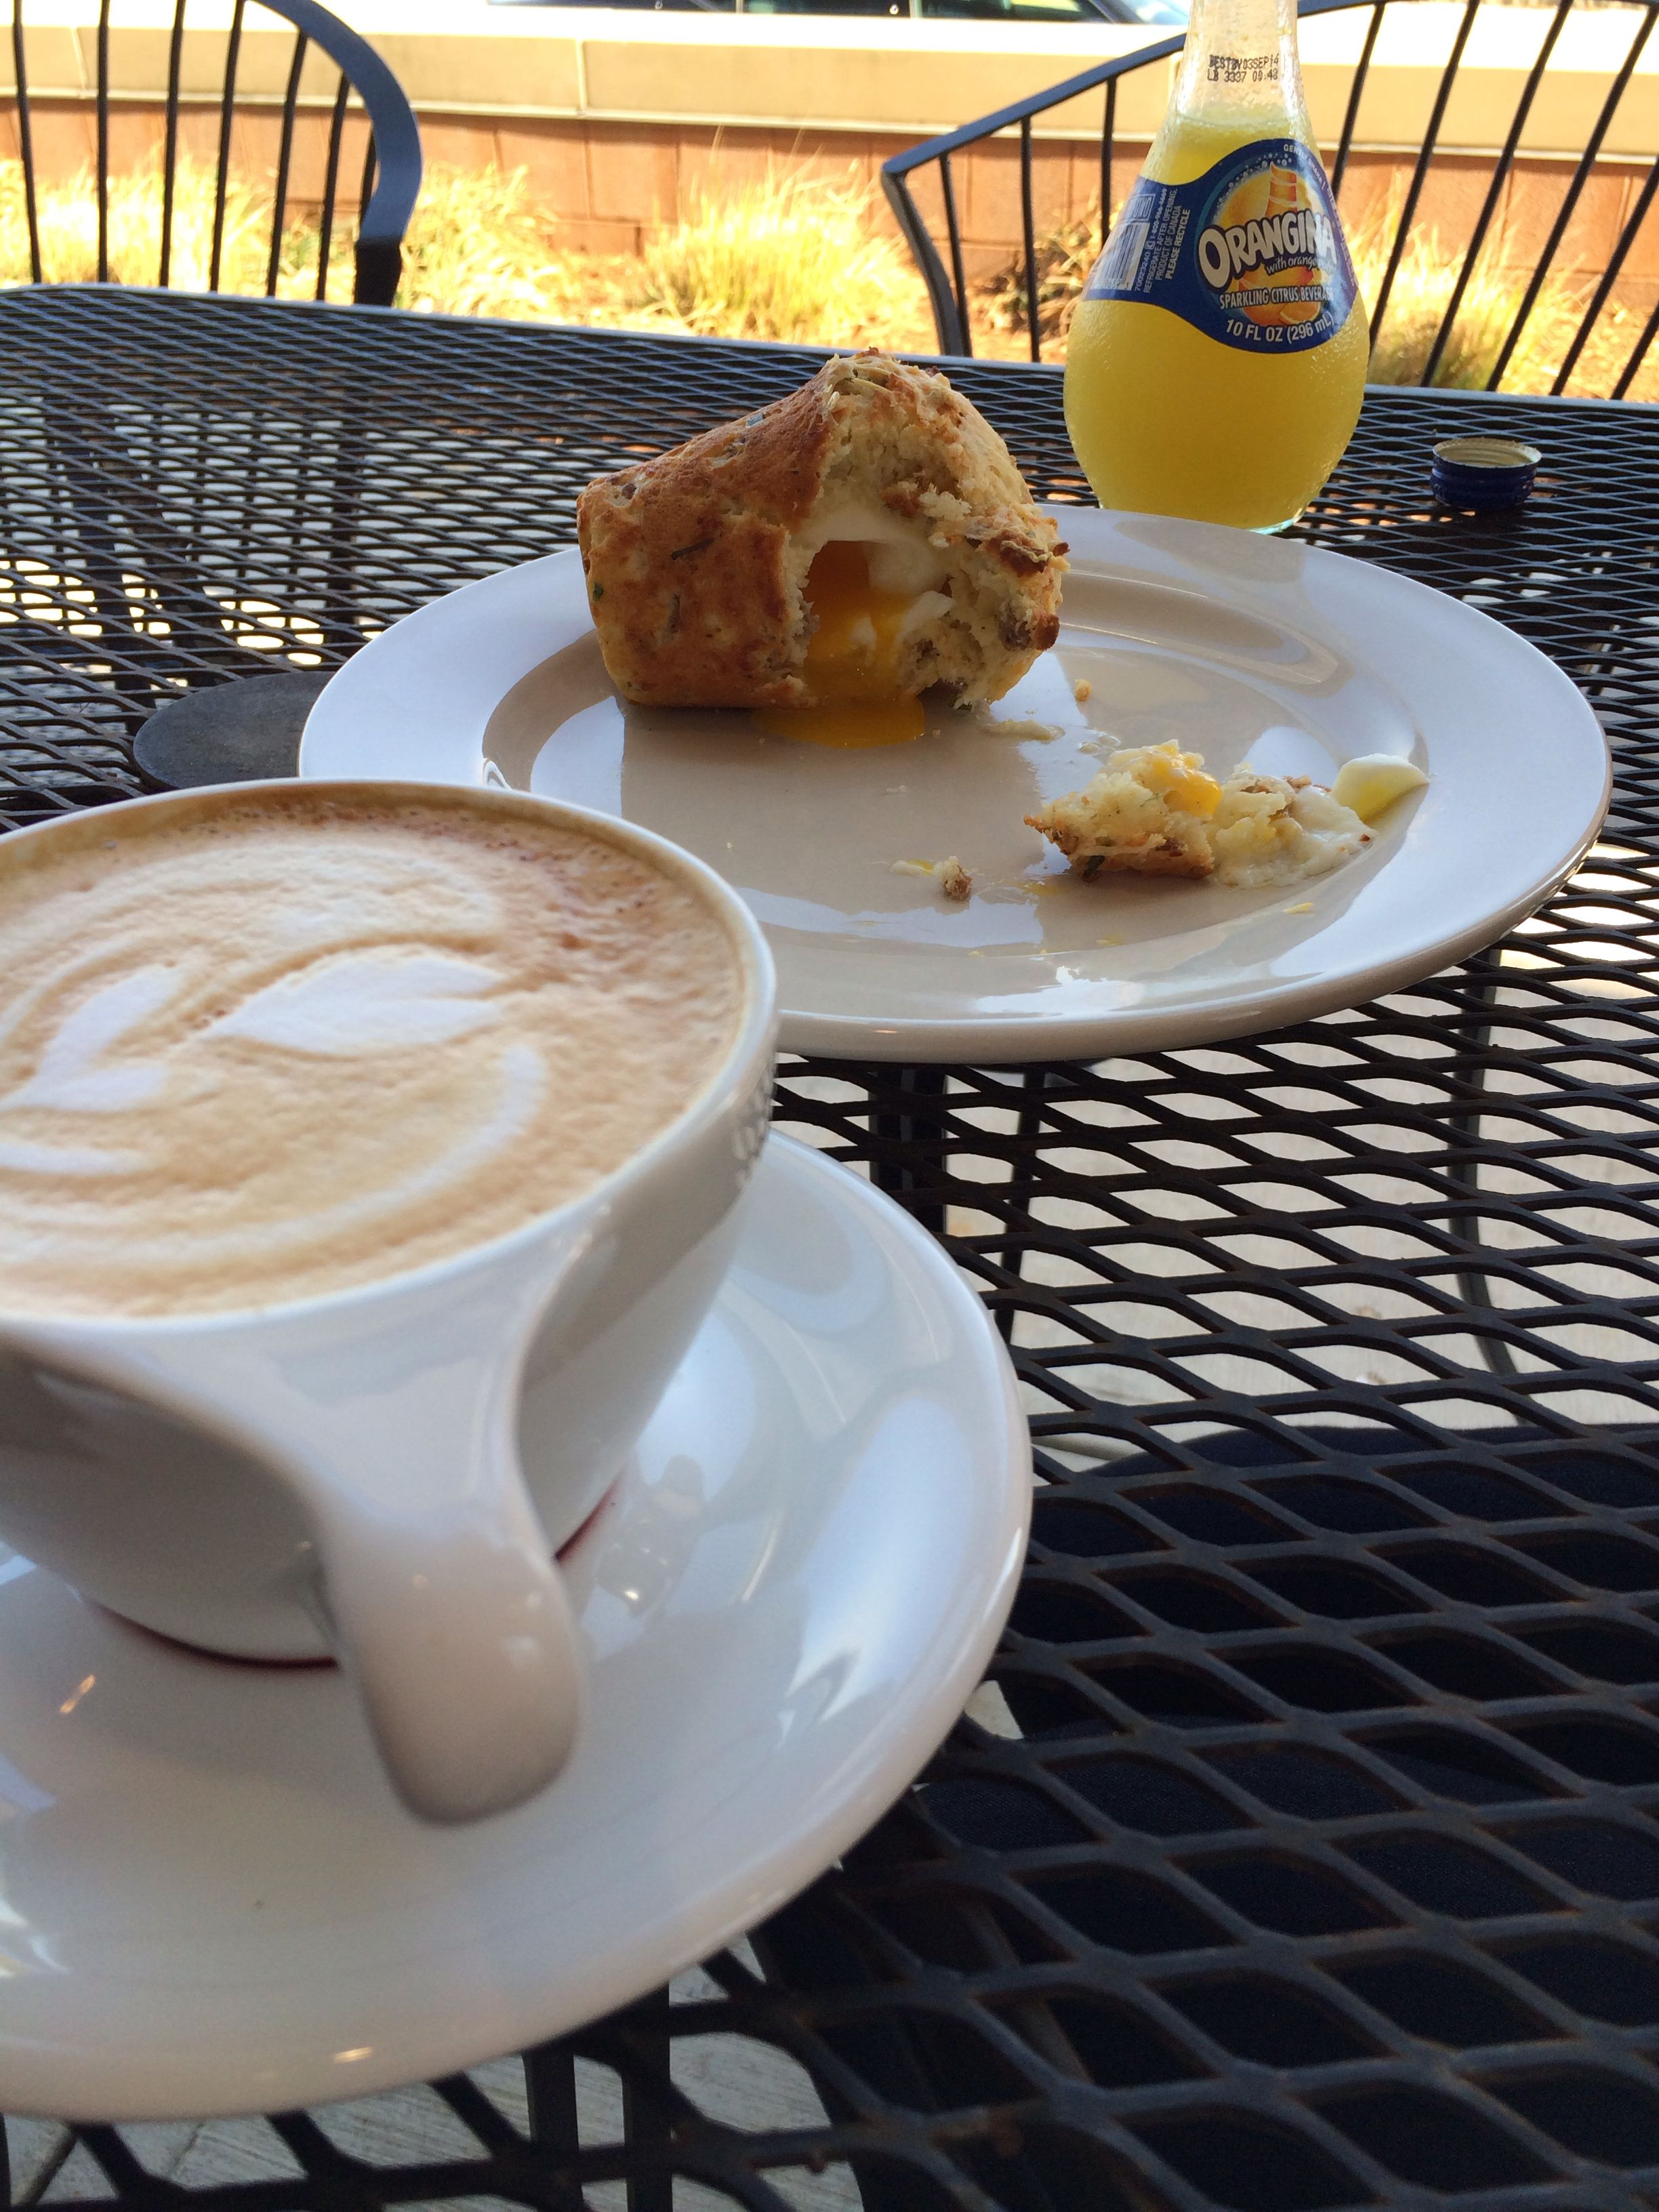 Breakfast at Comet Coffee, with their famous Rebel Muffin with a soft boiled egg inside. I'm having a flat white and Brit's enjoying an Orangina.